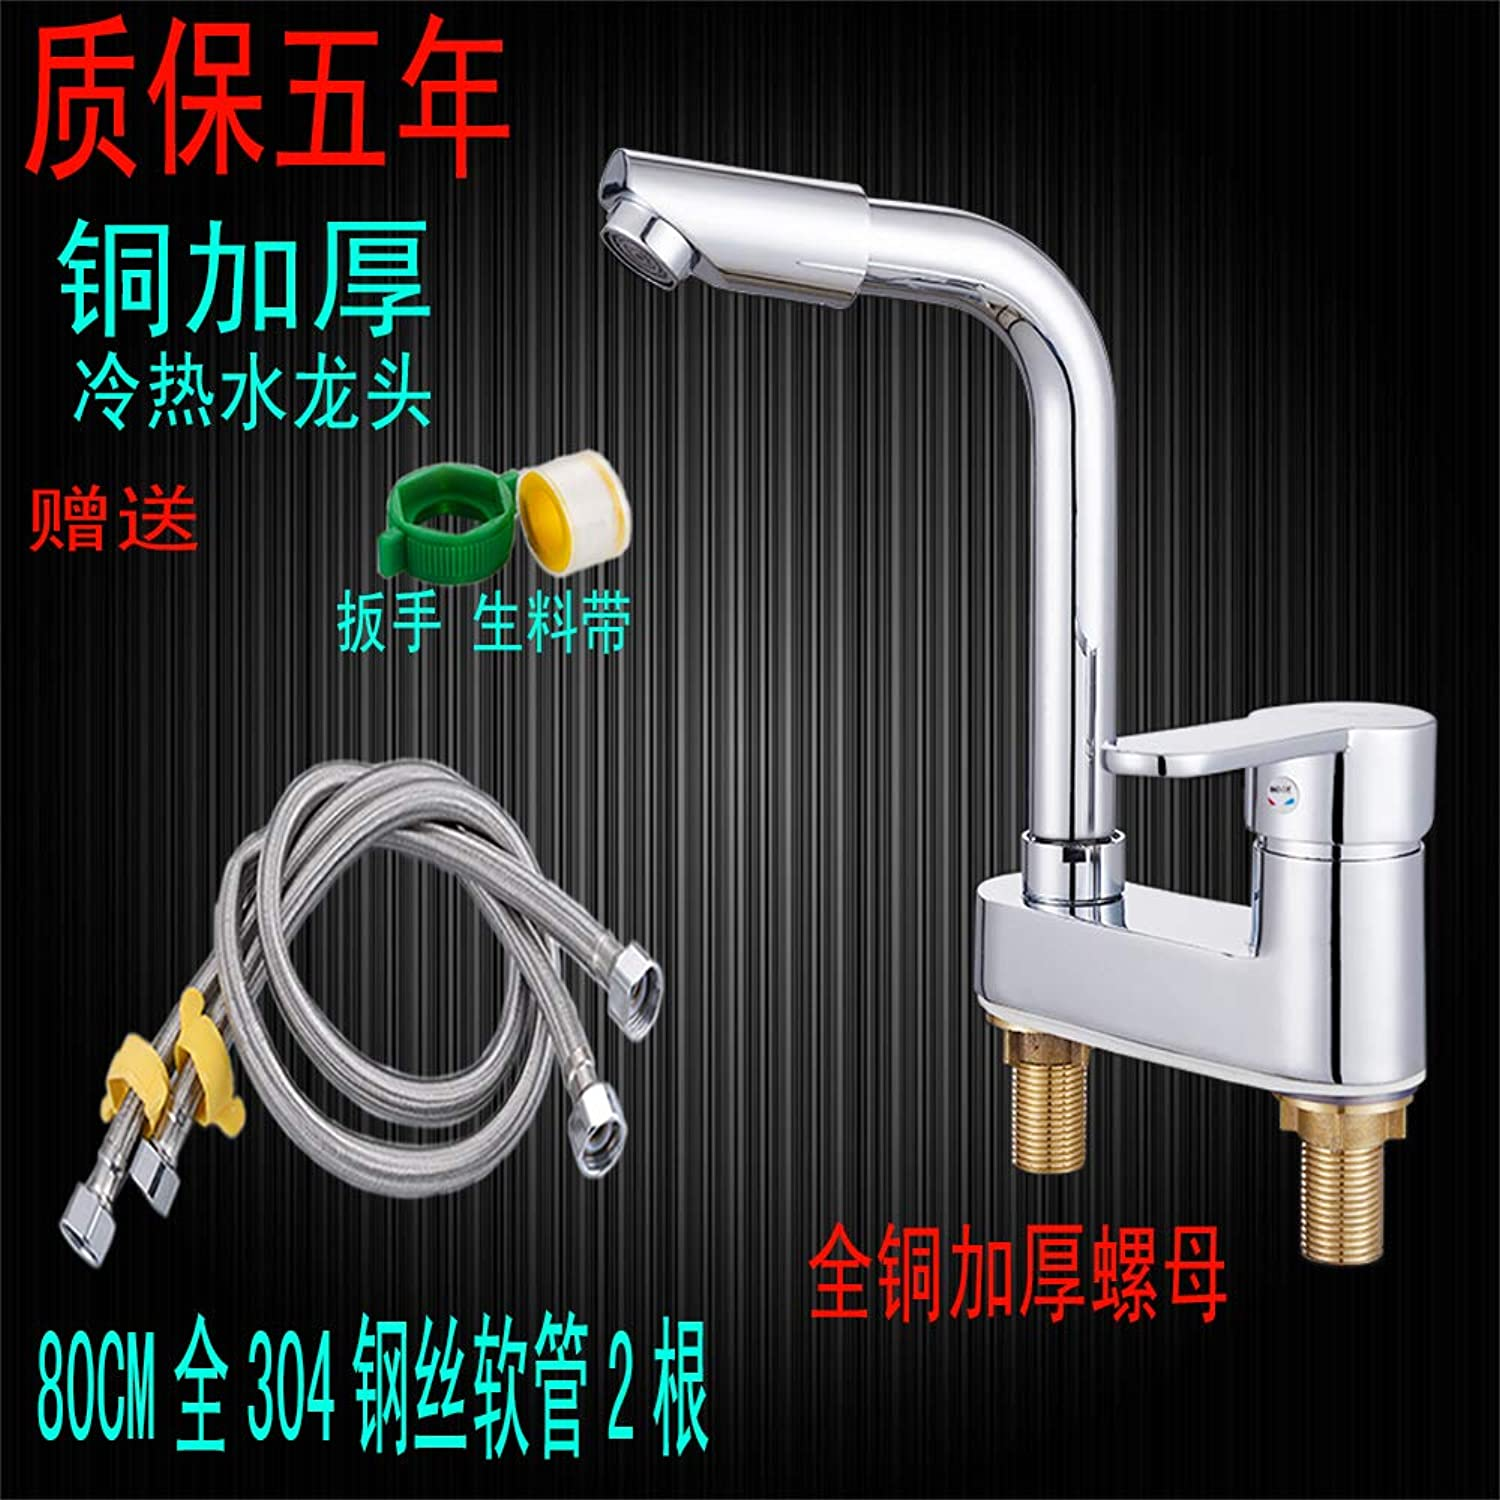 PajCzh Sink Bathroom Sink Taps Copper Double Hole Basin Wash Basin Faucet Bathroom Bathroom Cabinet Hot And Cold Water Faucet Wash Basin Basin Mixing Valve, Copper, 2 80Cm Hose